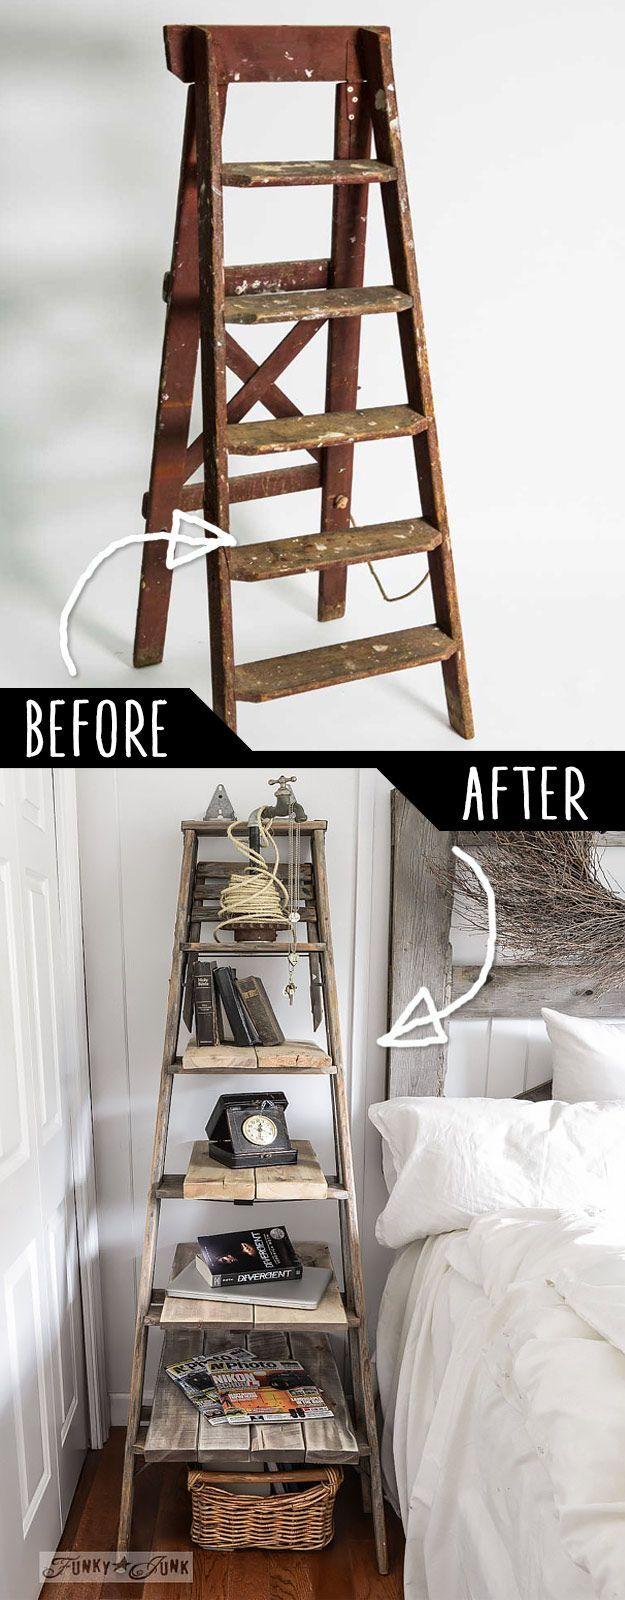 creative image furniture. diy furniture hacks step ladder side table cool ideas for creative do it yourself image